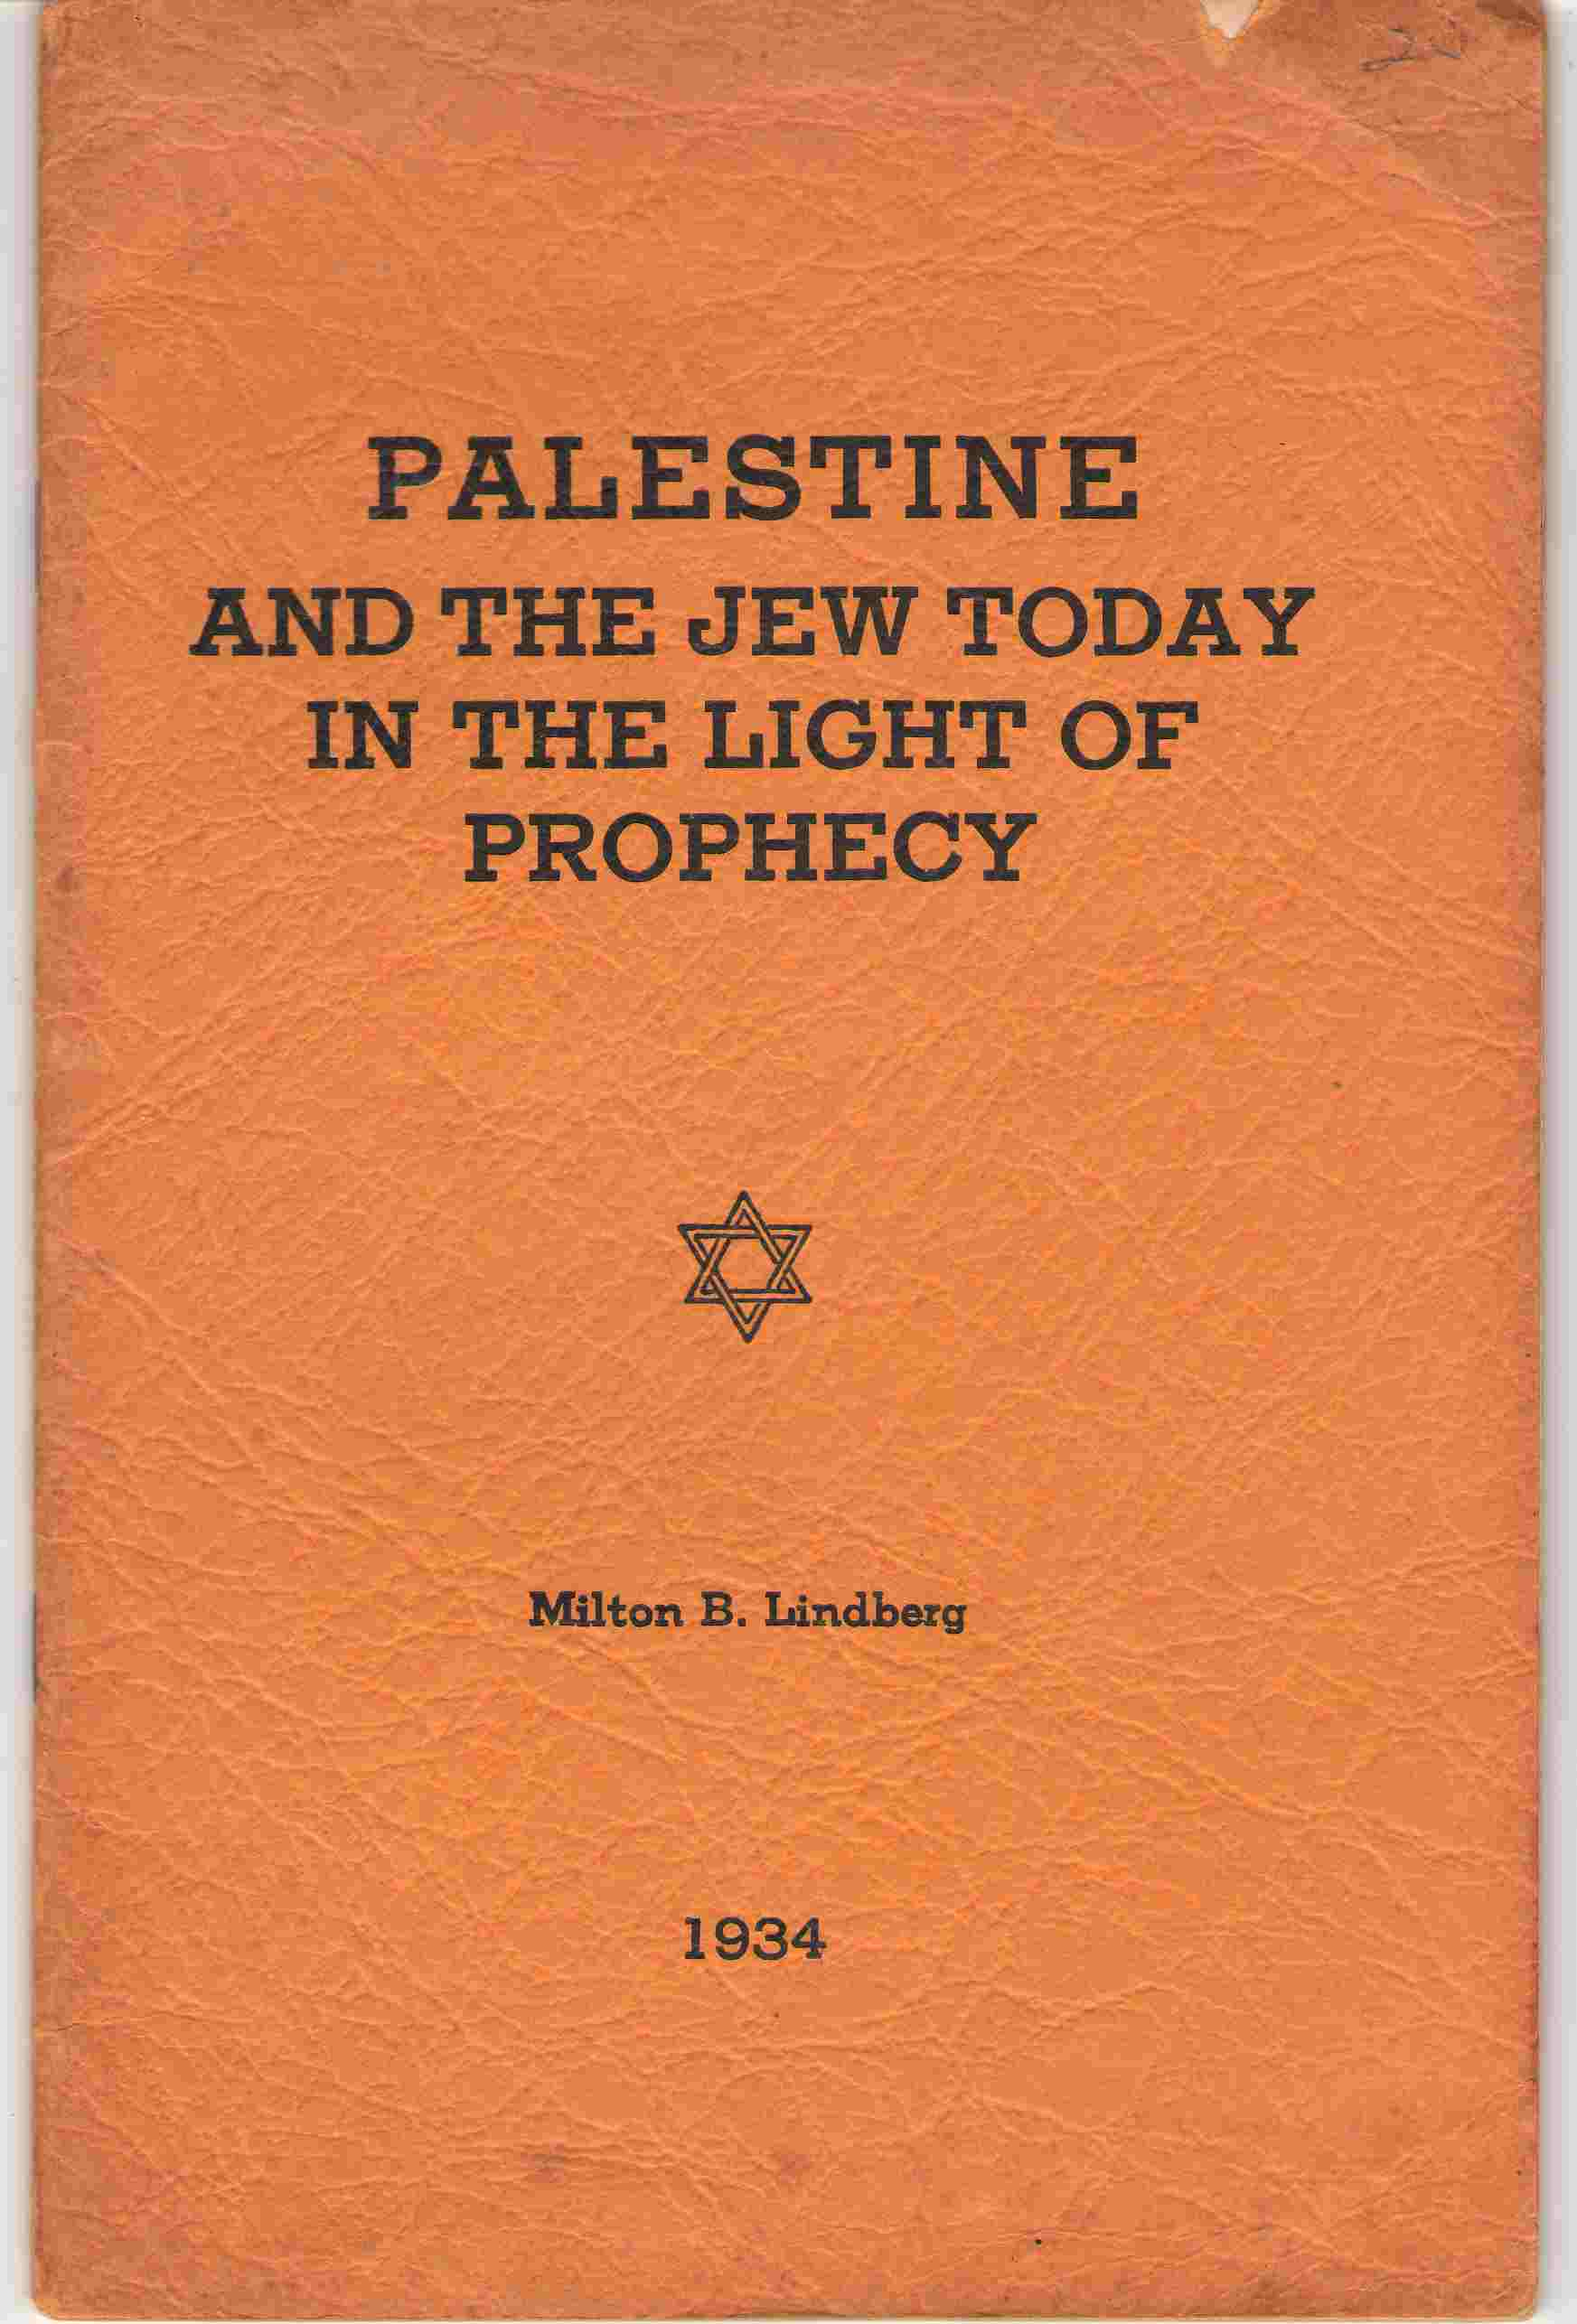 Image for Palestine And The Jew Today In The Light Of Prophecy